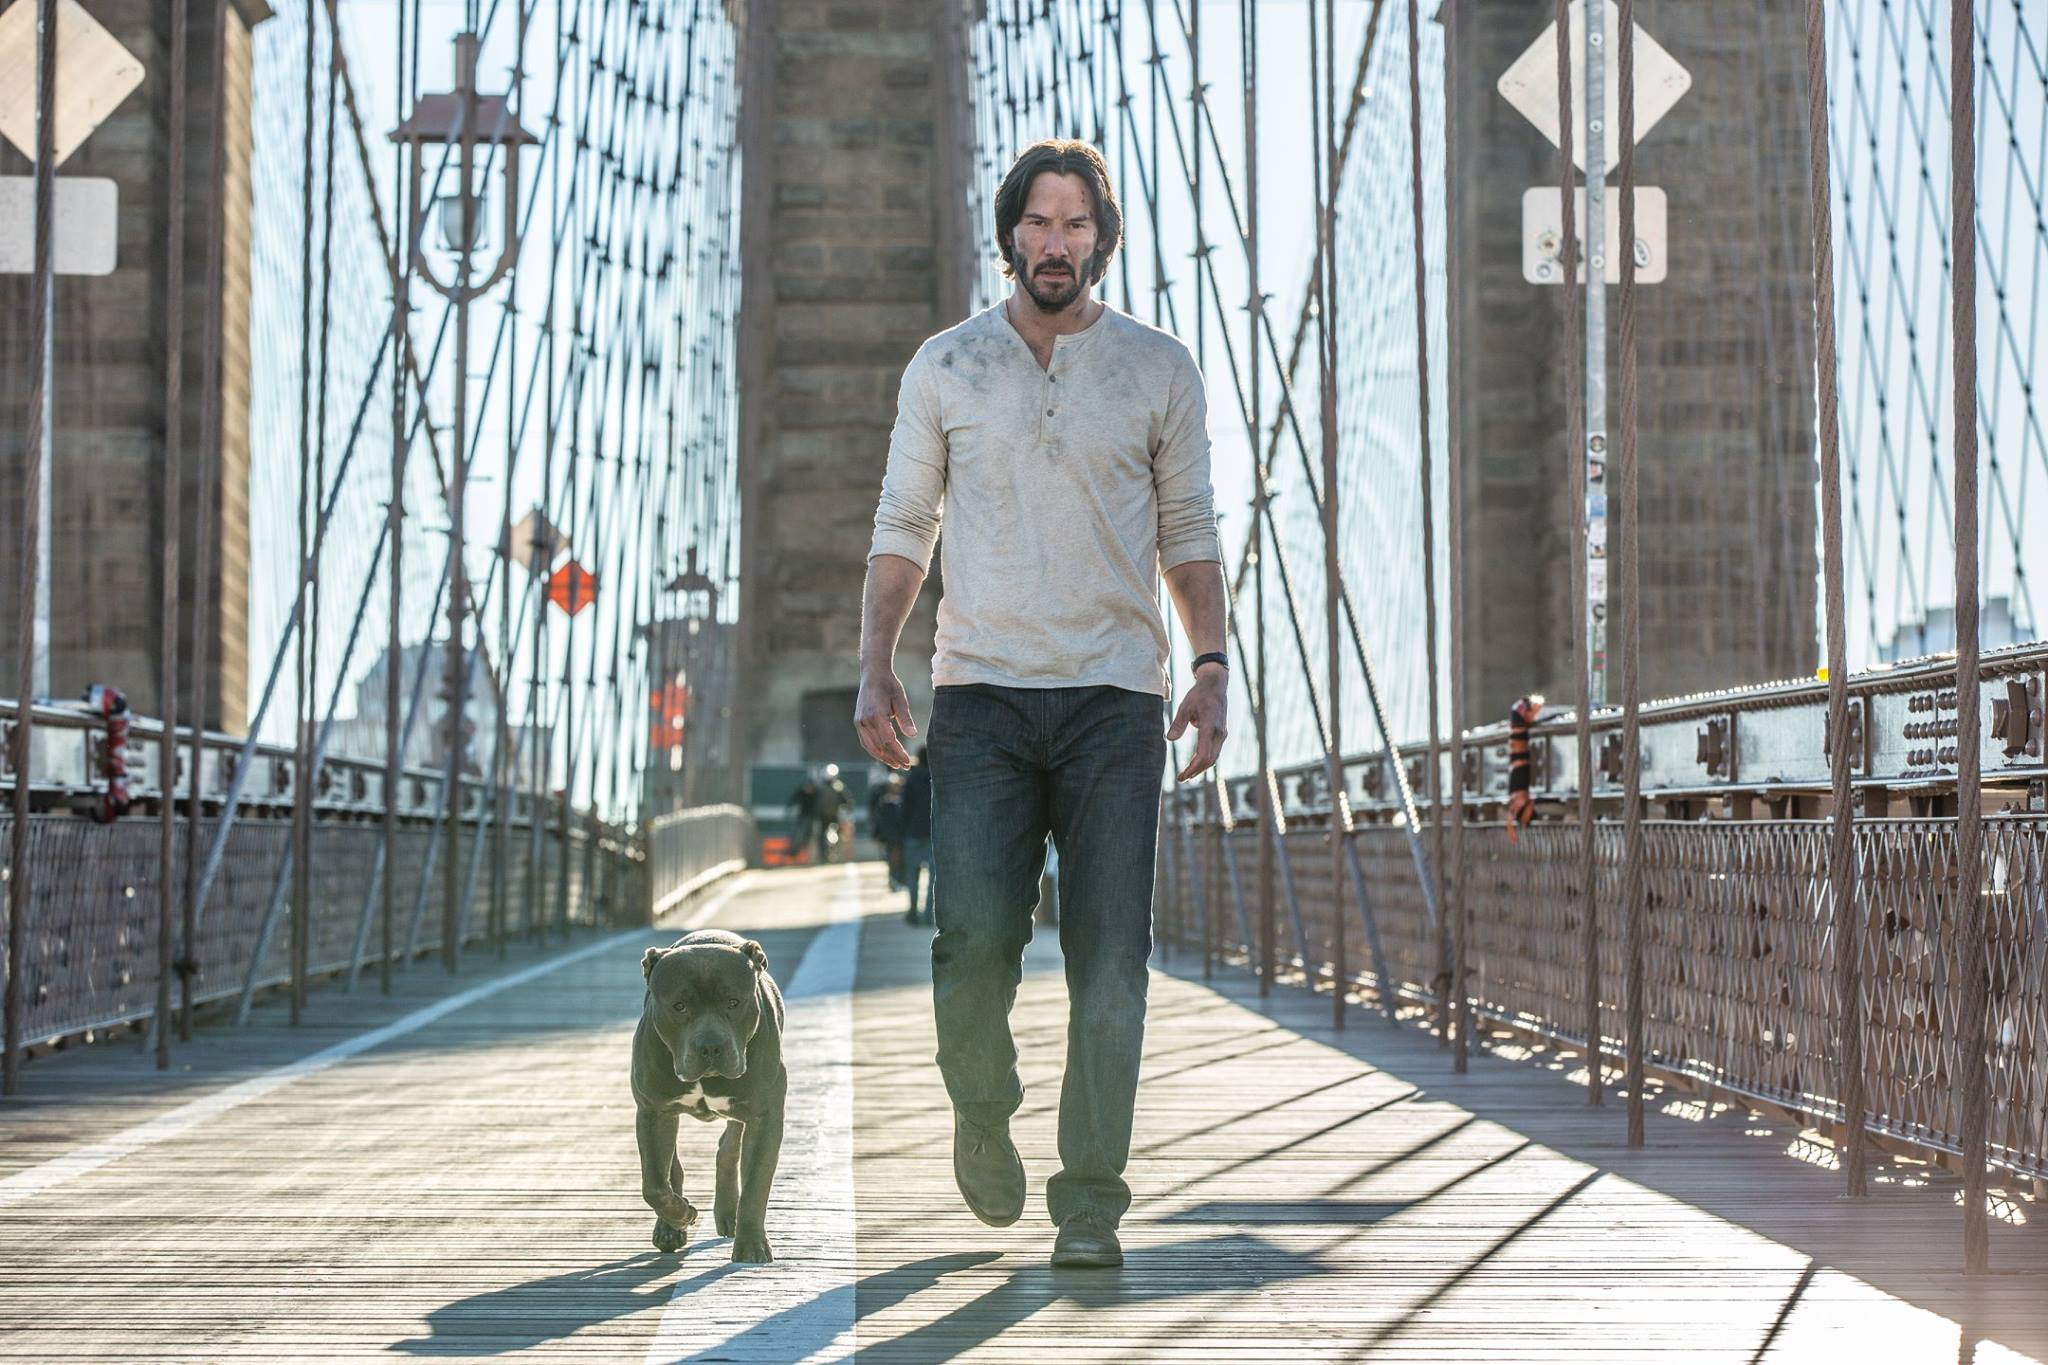 John Wick 2 Ending Explained: Why It Doesn't Work | Collider